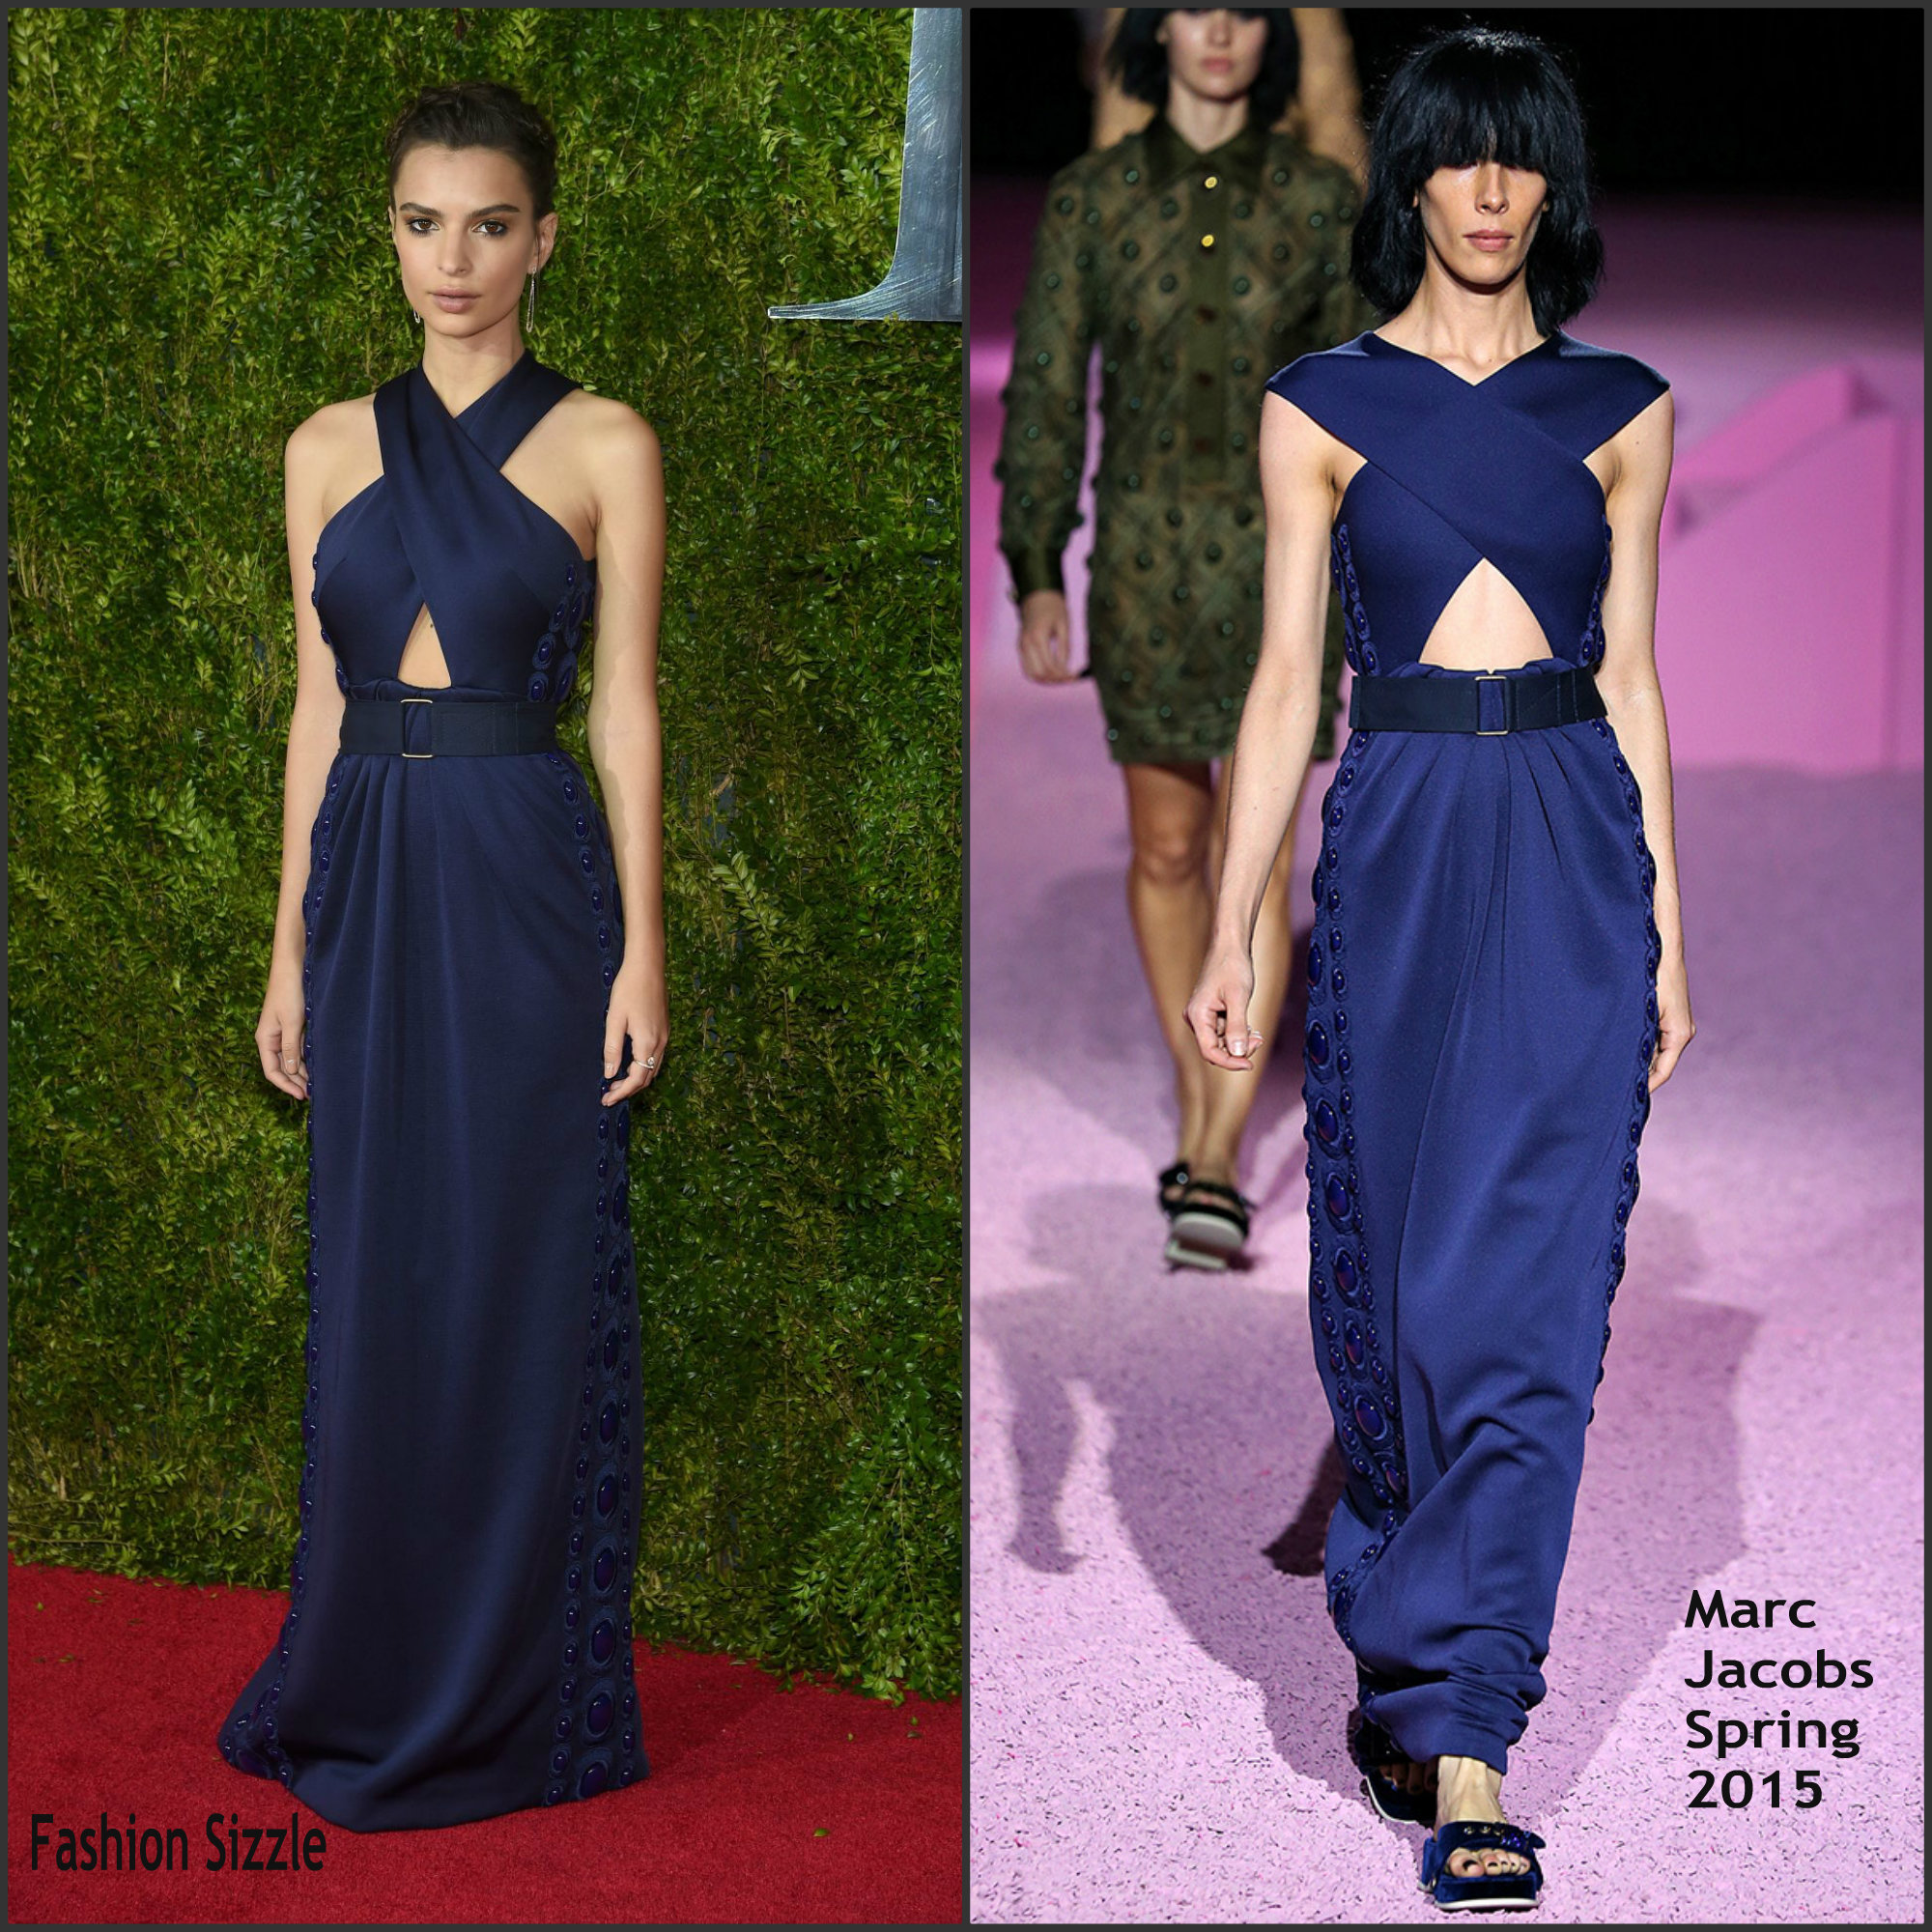 emily-ratajkowski-in-marc-jacobs-at-the-2015-tony-awards